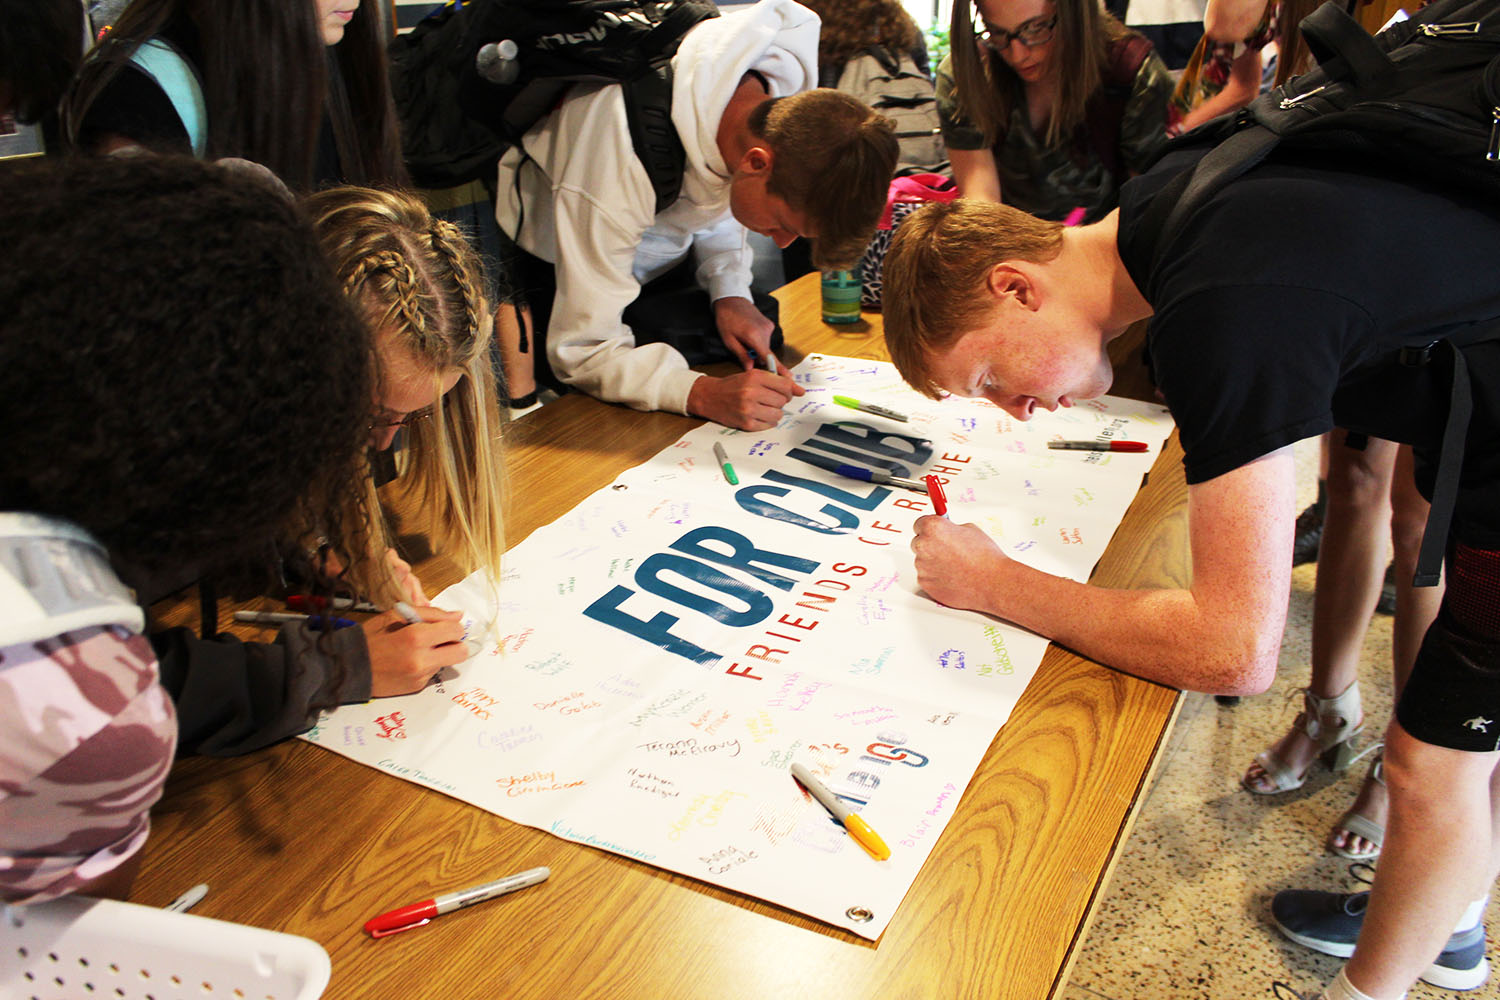 Students sign the FOR club banner, showing they will take the challenge. Over 100 students have joined.